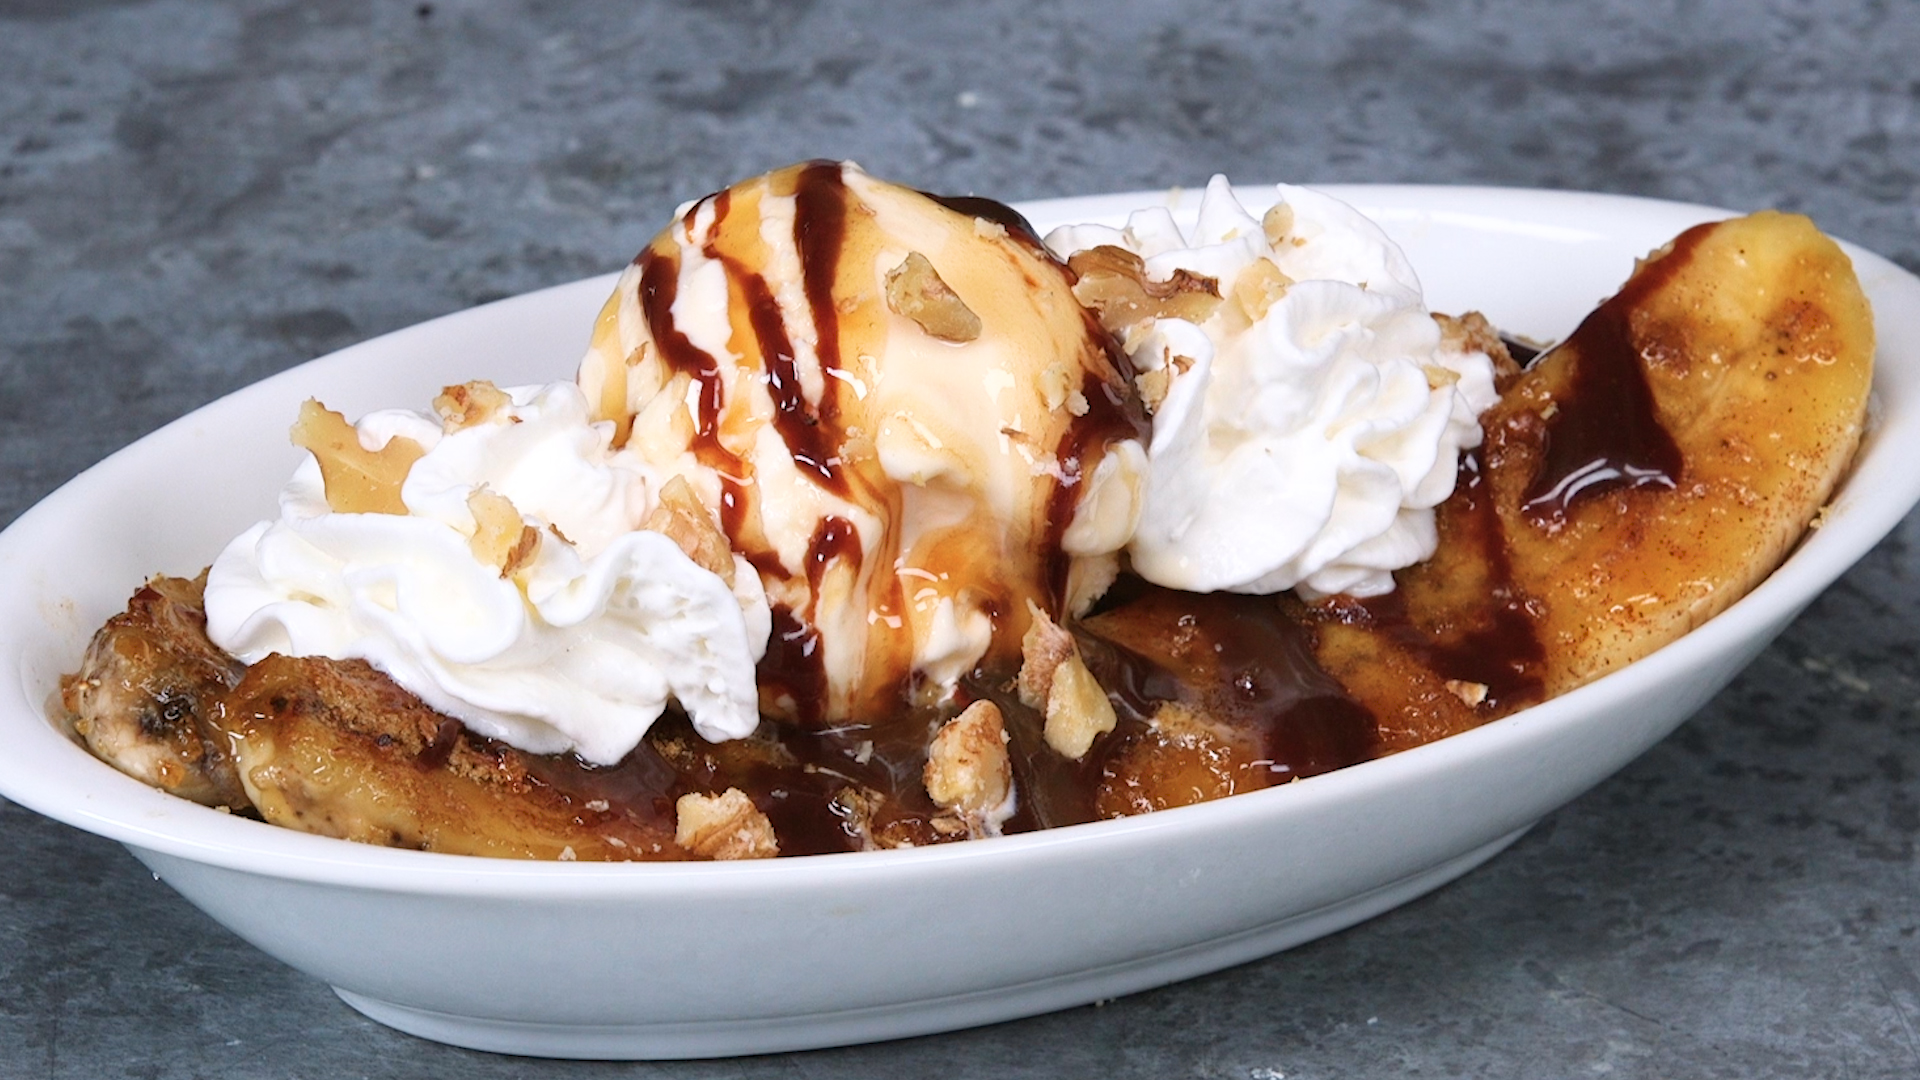 Caramelized Banana Split image